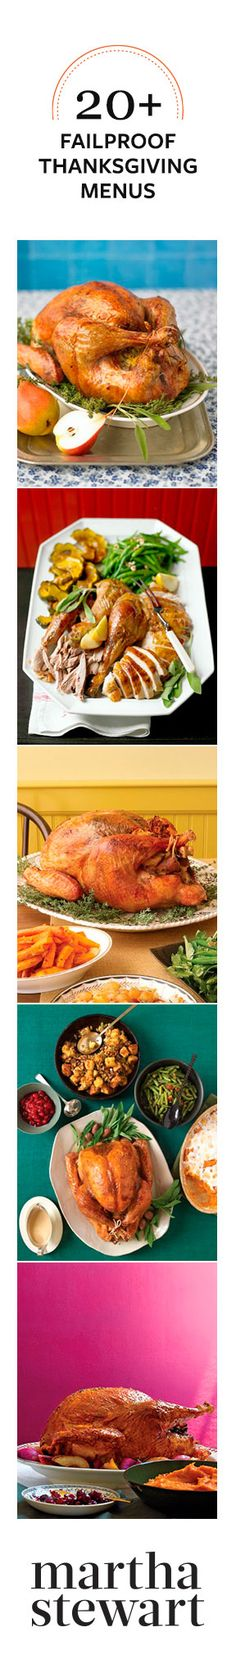 20+ Failproof Thanksgiving Menus from Martha Stewart #marthastewart #thanksgiving